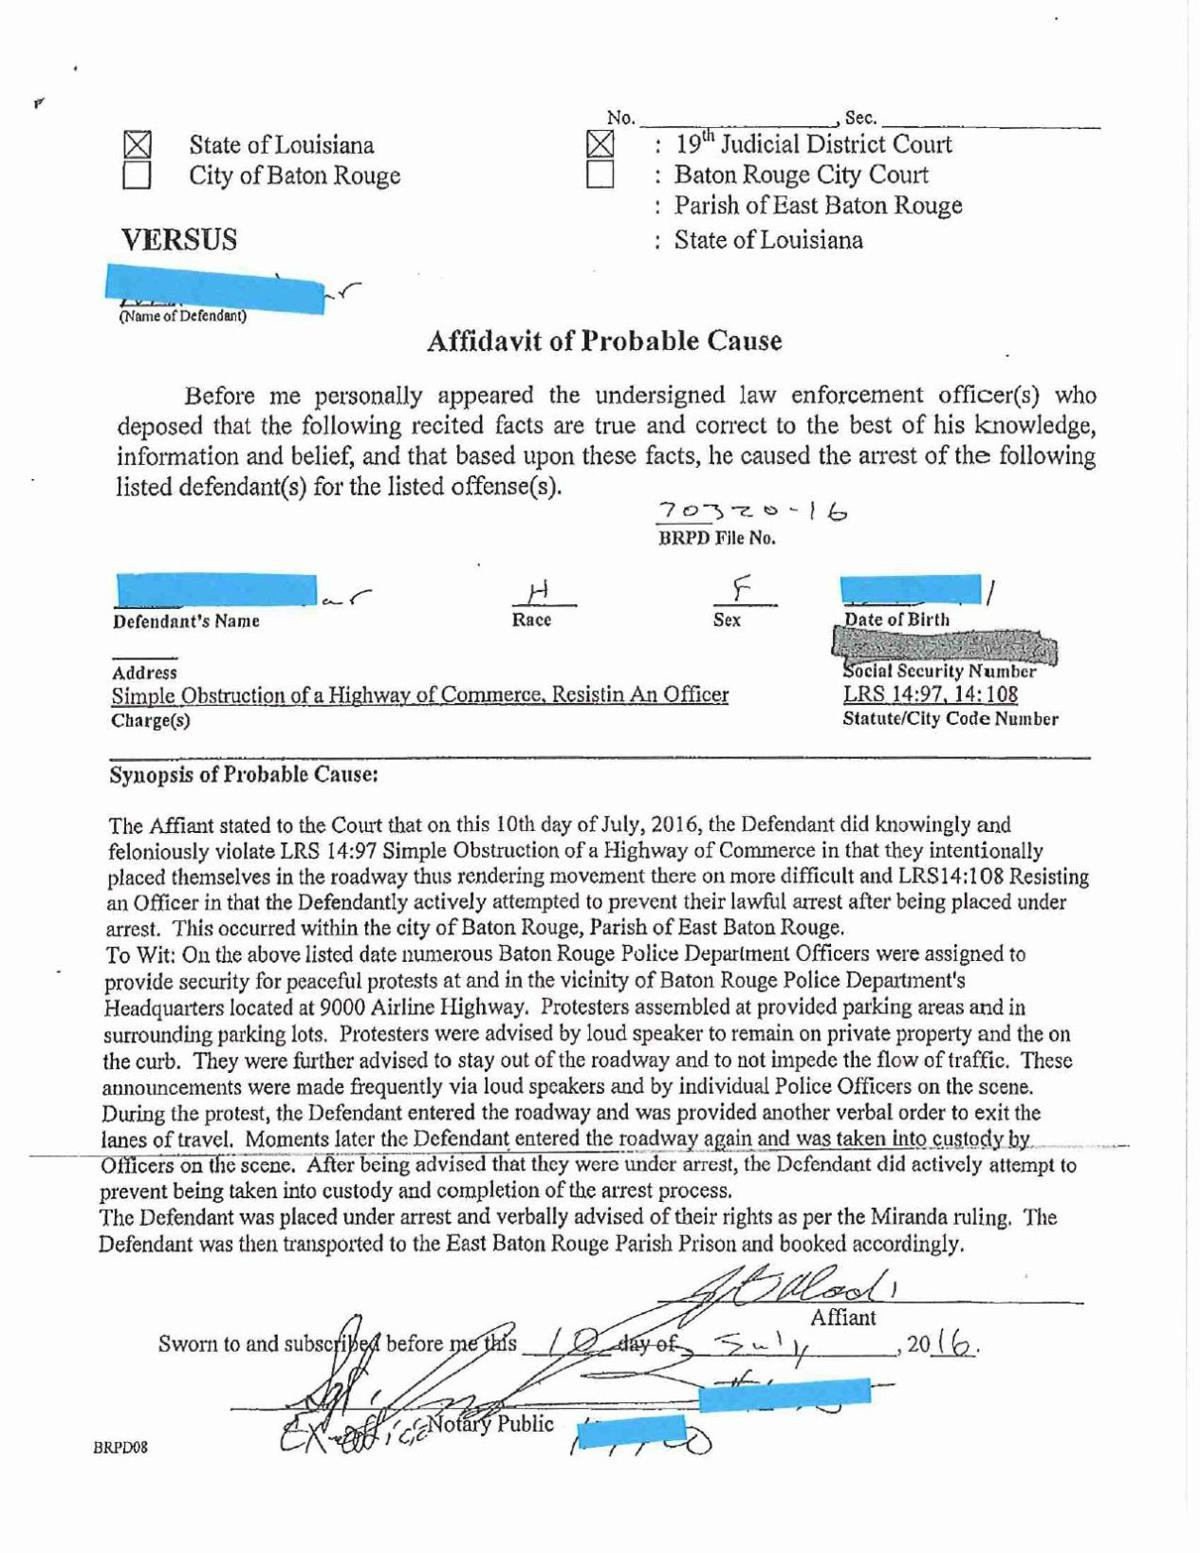 Sample of affidavits of probable cause for protesters